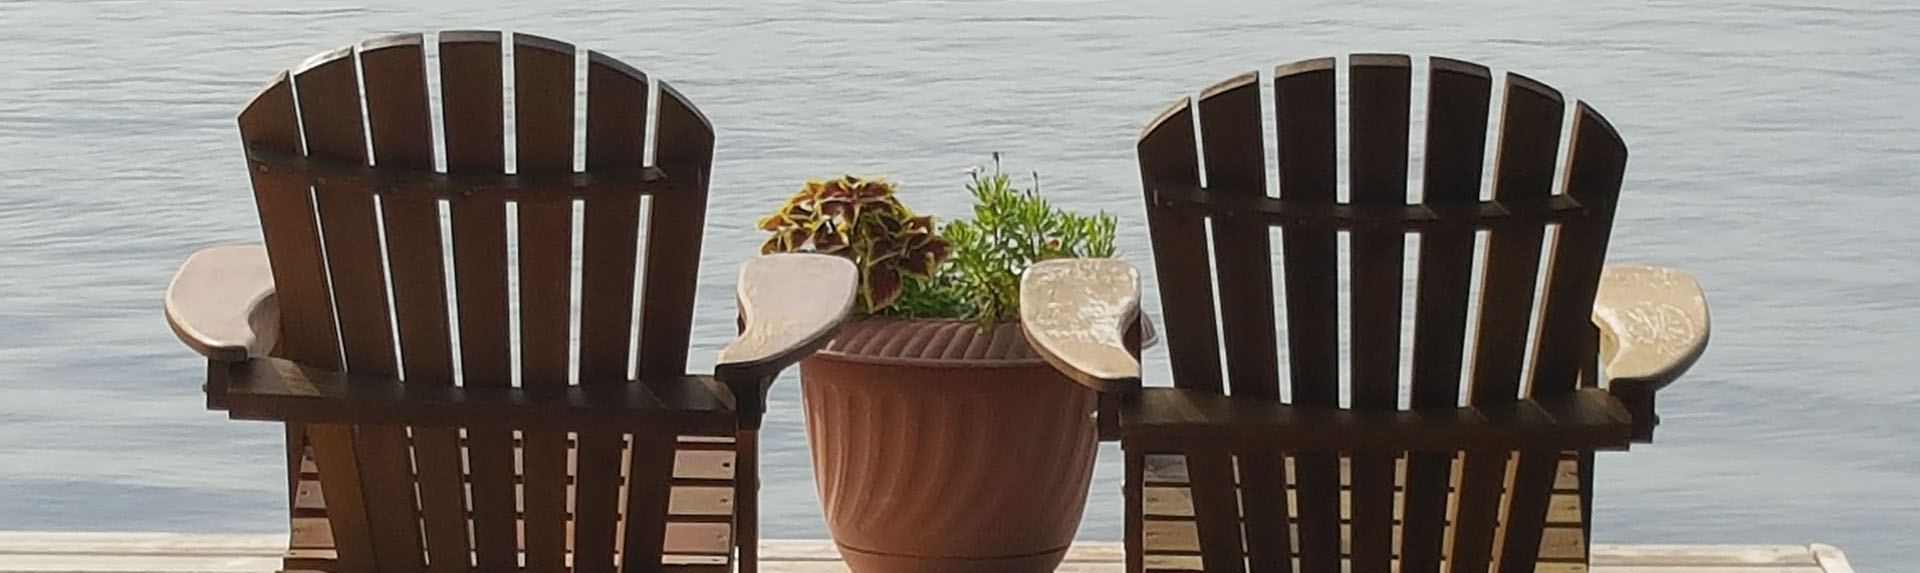 chairs on a deck